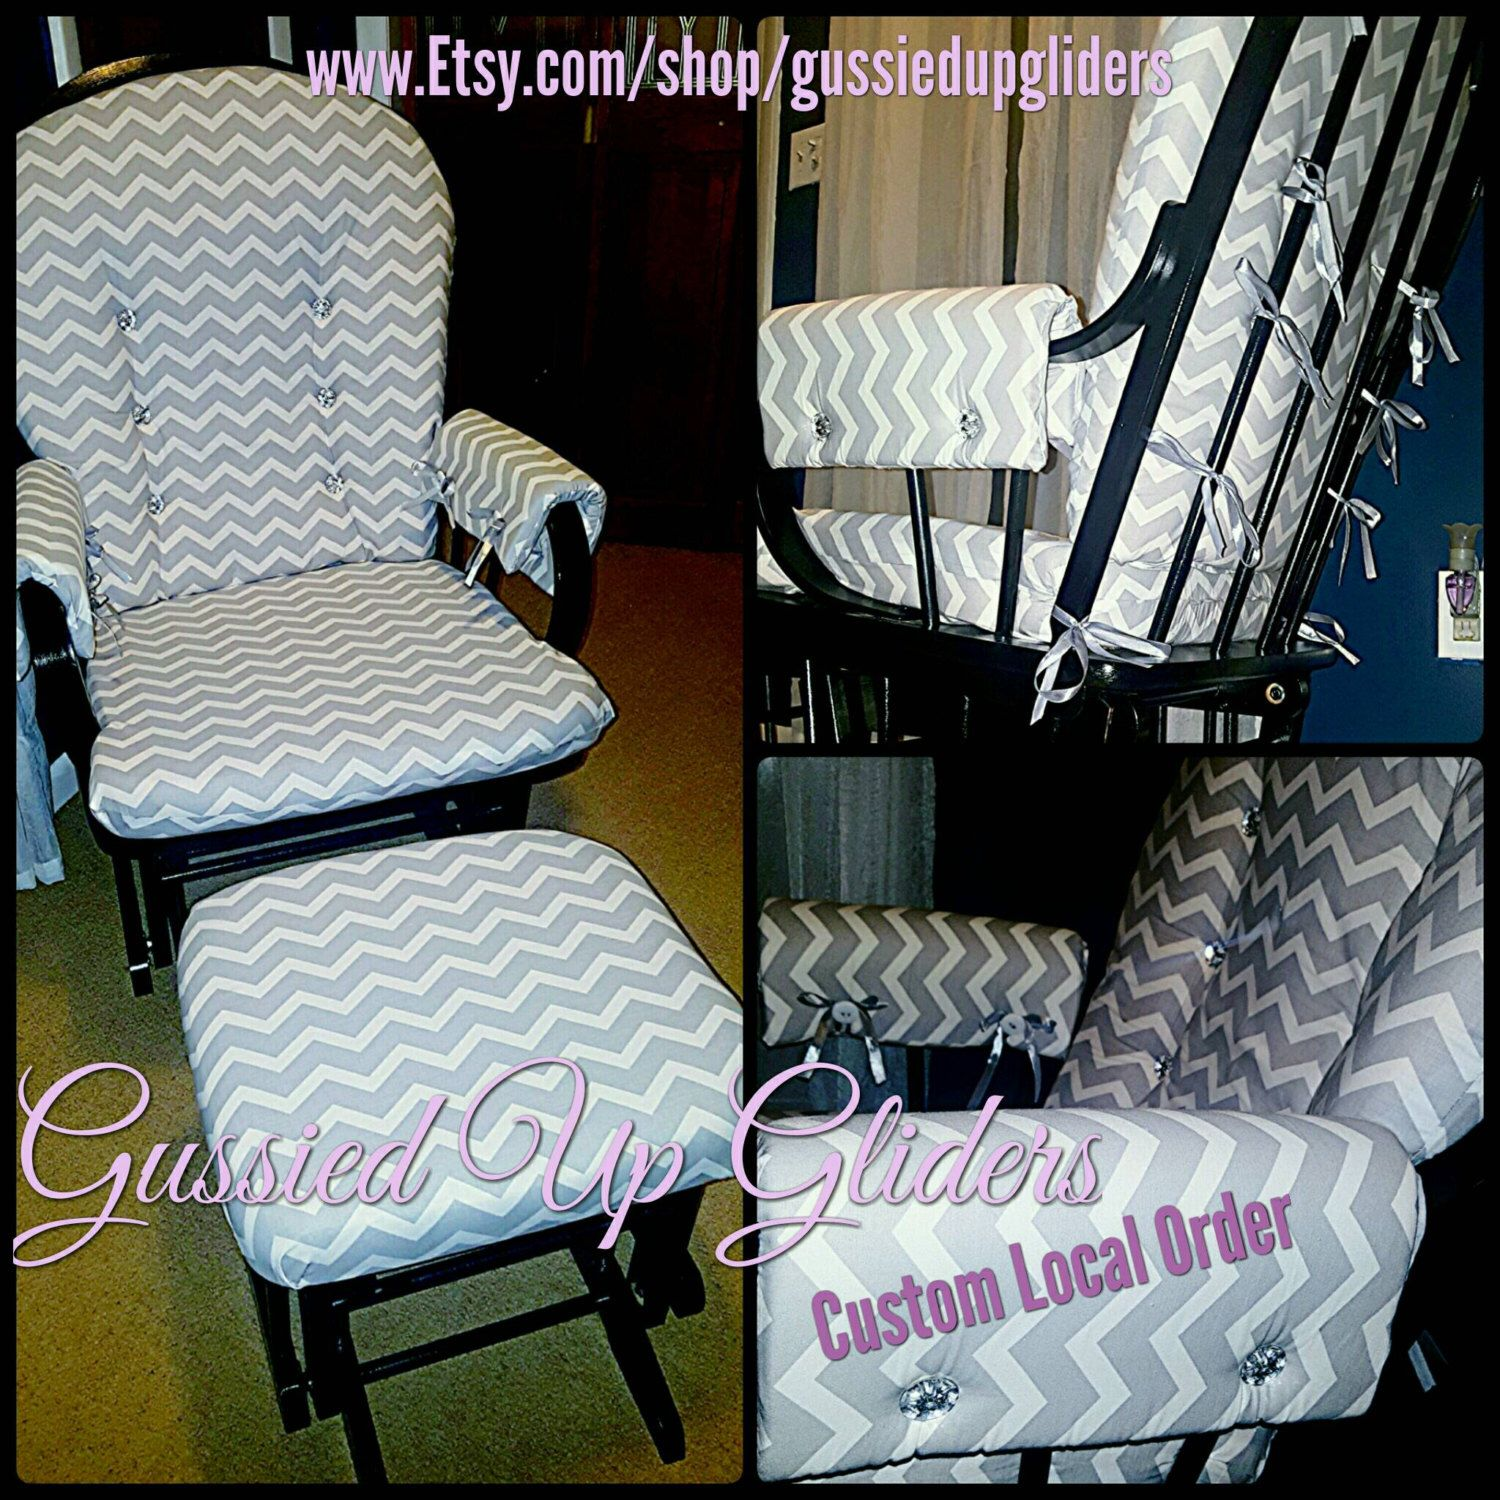 custom rocking chair cushions. Custom Glider Cushion Set And Arm Rests Design, Chair Cushions, Replacement Rocker Pads, Rocking Cushions